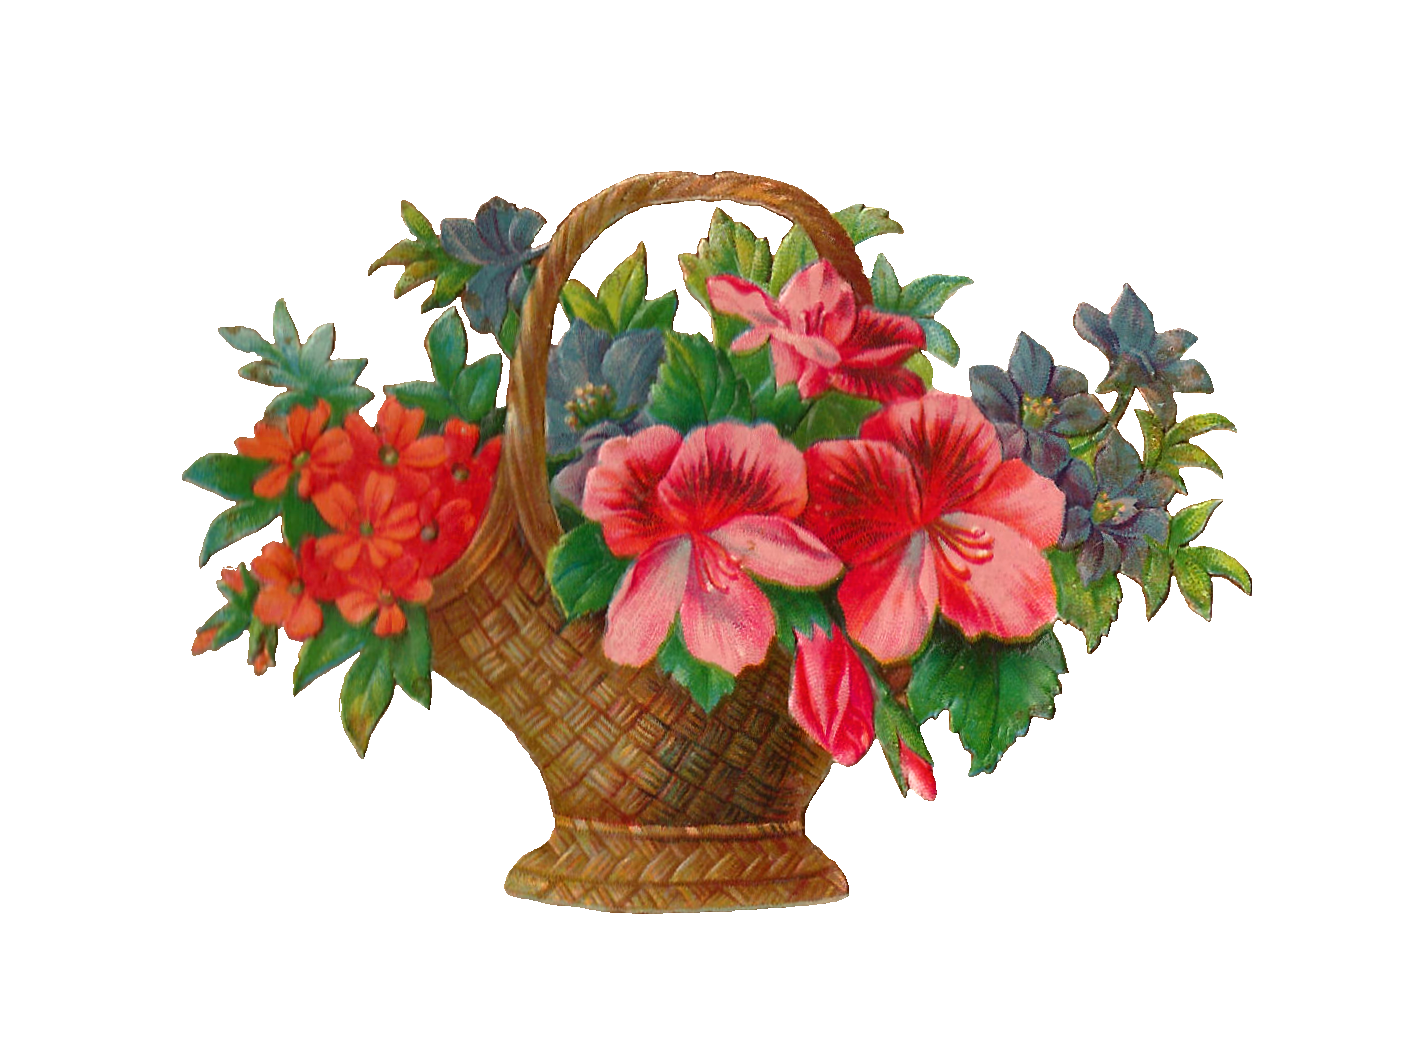 Hanging flower basket clipart graphic royalty free Free Flower Stock Image: Antique Flower Basket With Flowers Graphic ... graphic royalty free